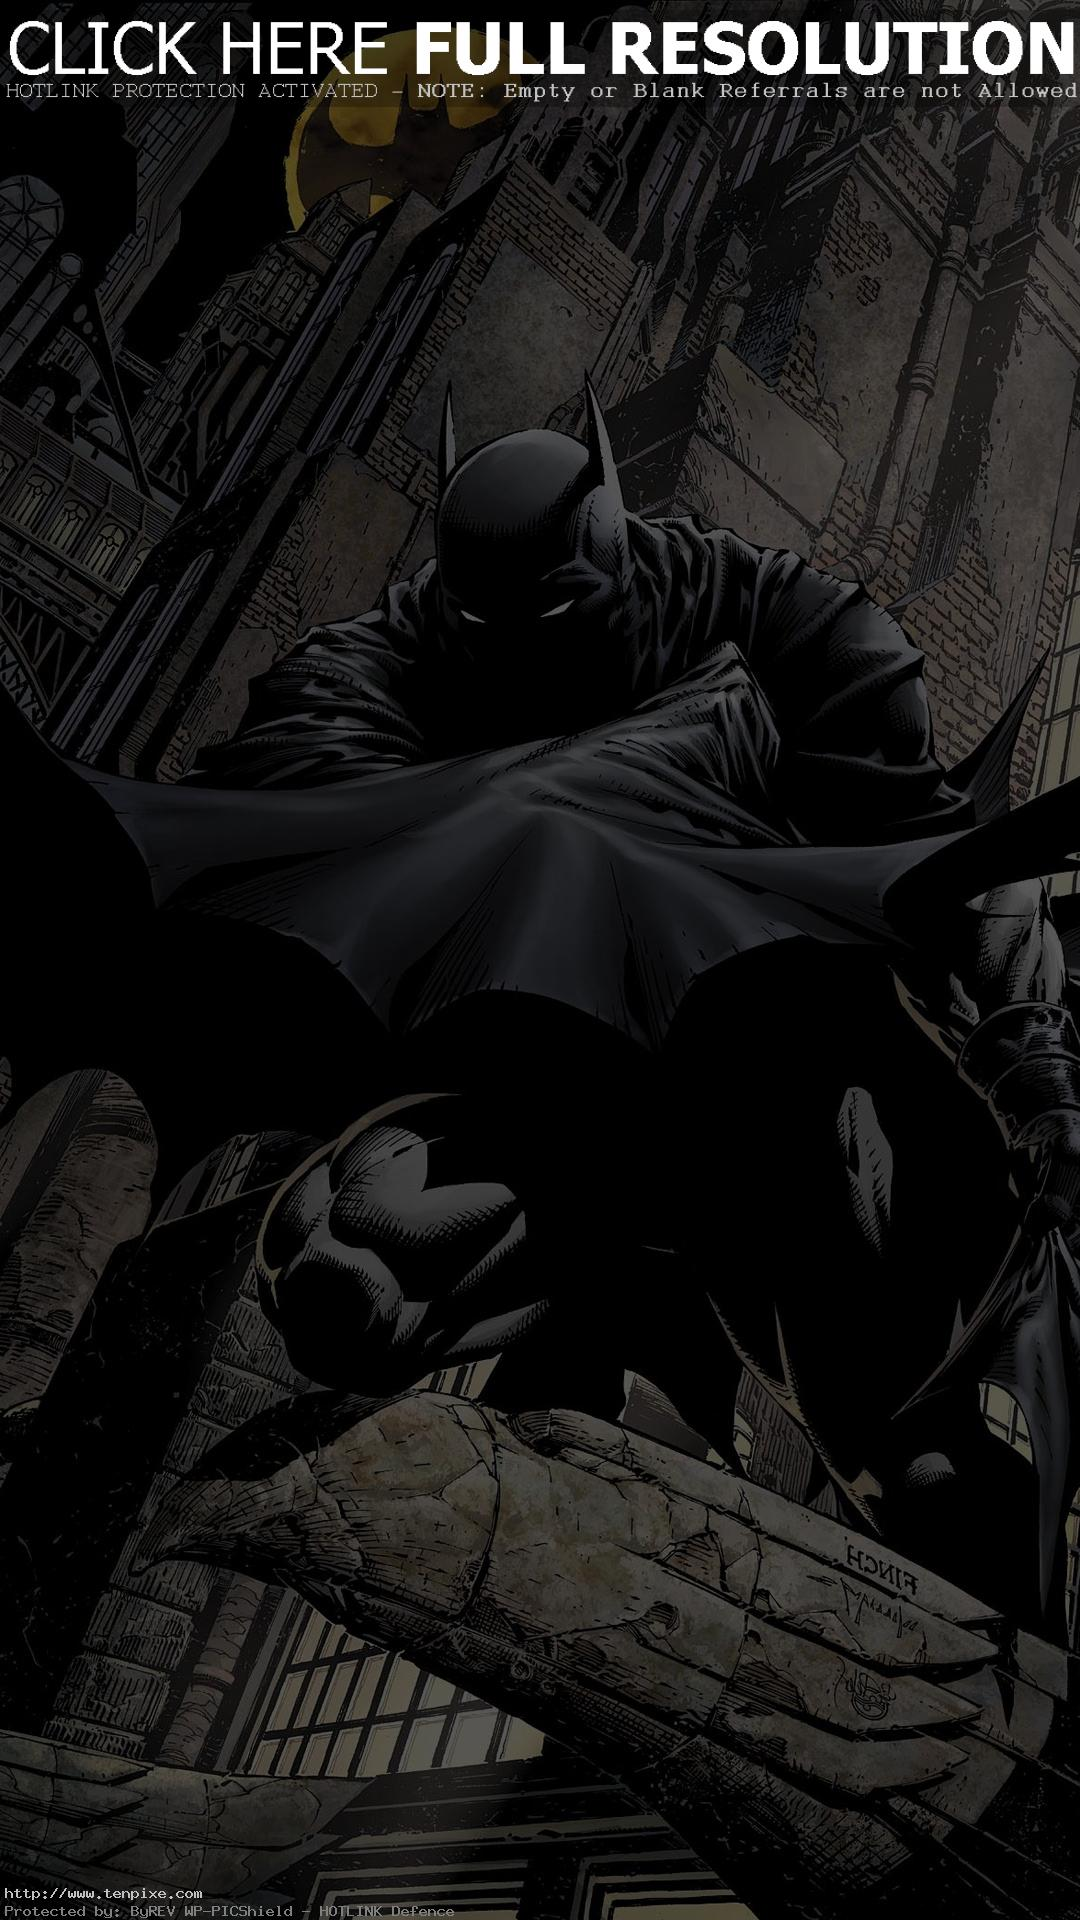 Batman Wallpaper Hd For Mobile Android And Iphone Ten Pixe